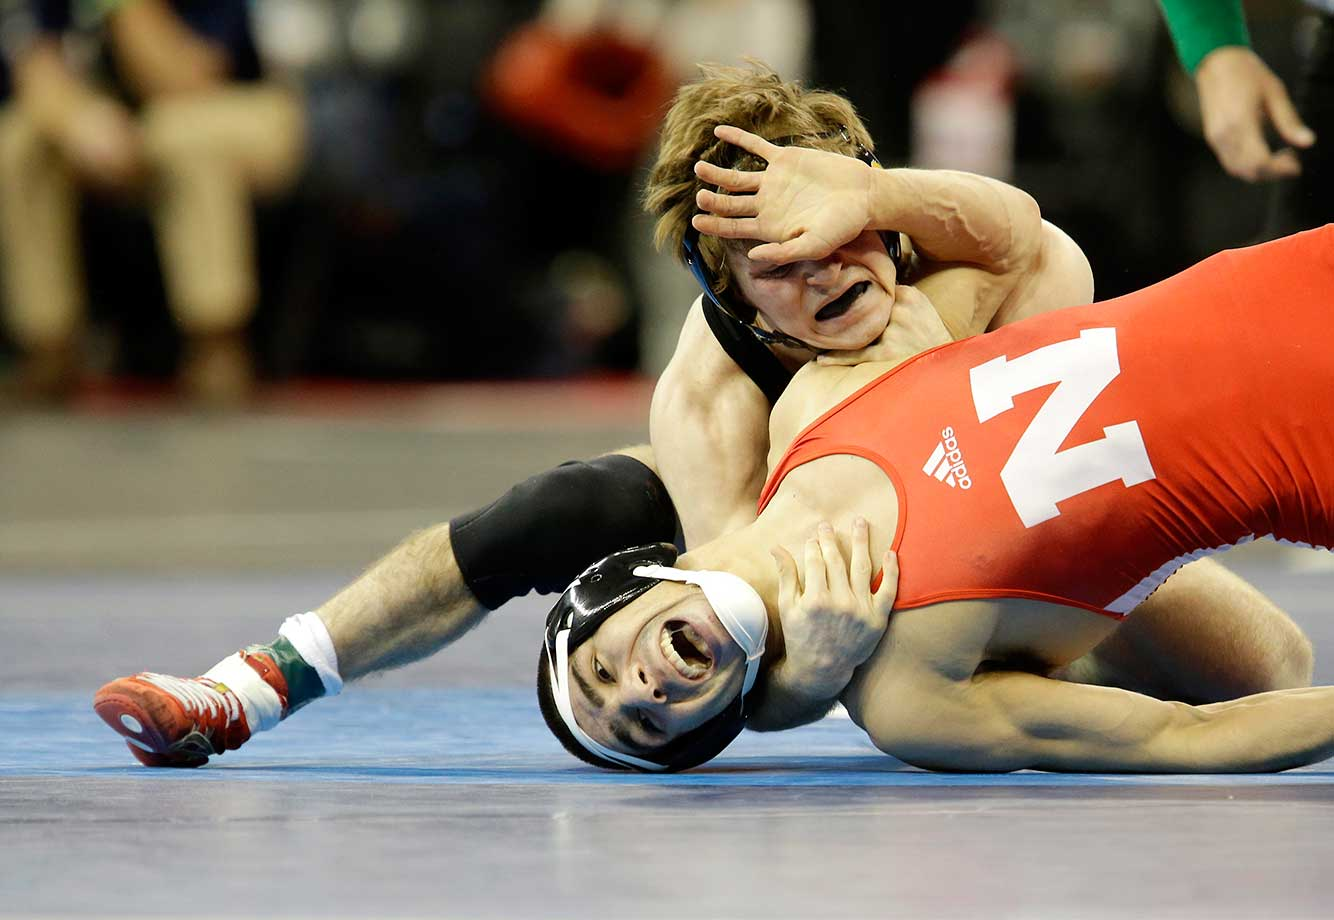 Iowa's Cory Clark, top, gets tangled up with Nebraska's Eric Montoya in a 133-pound match during the NCAA Division 1 wrestling championship in New York.